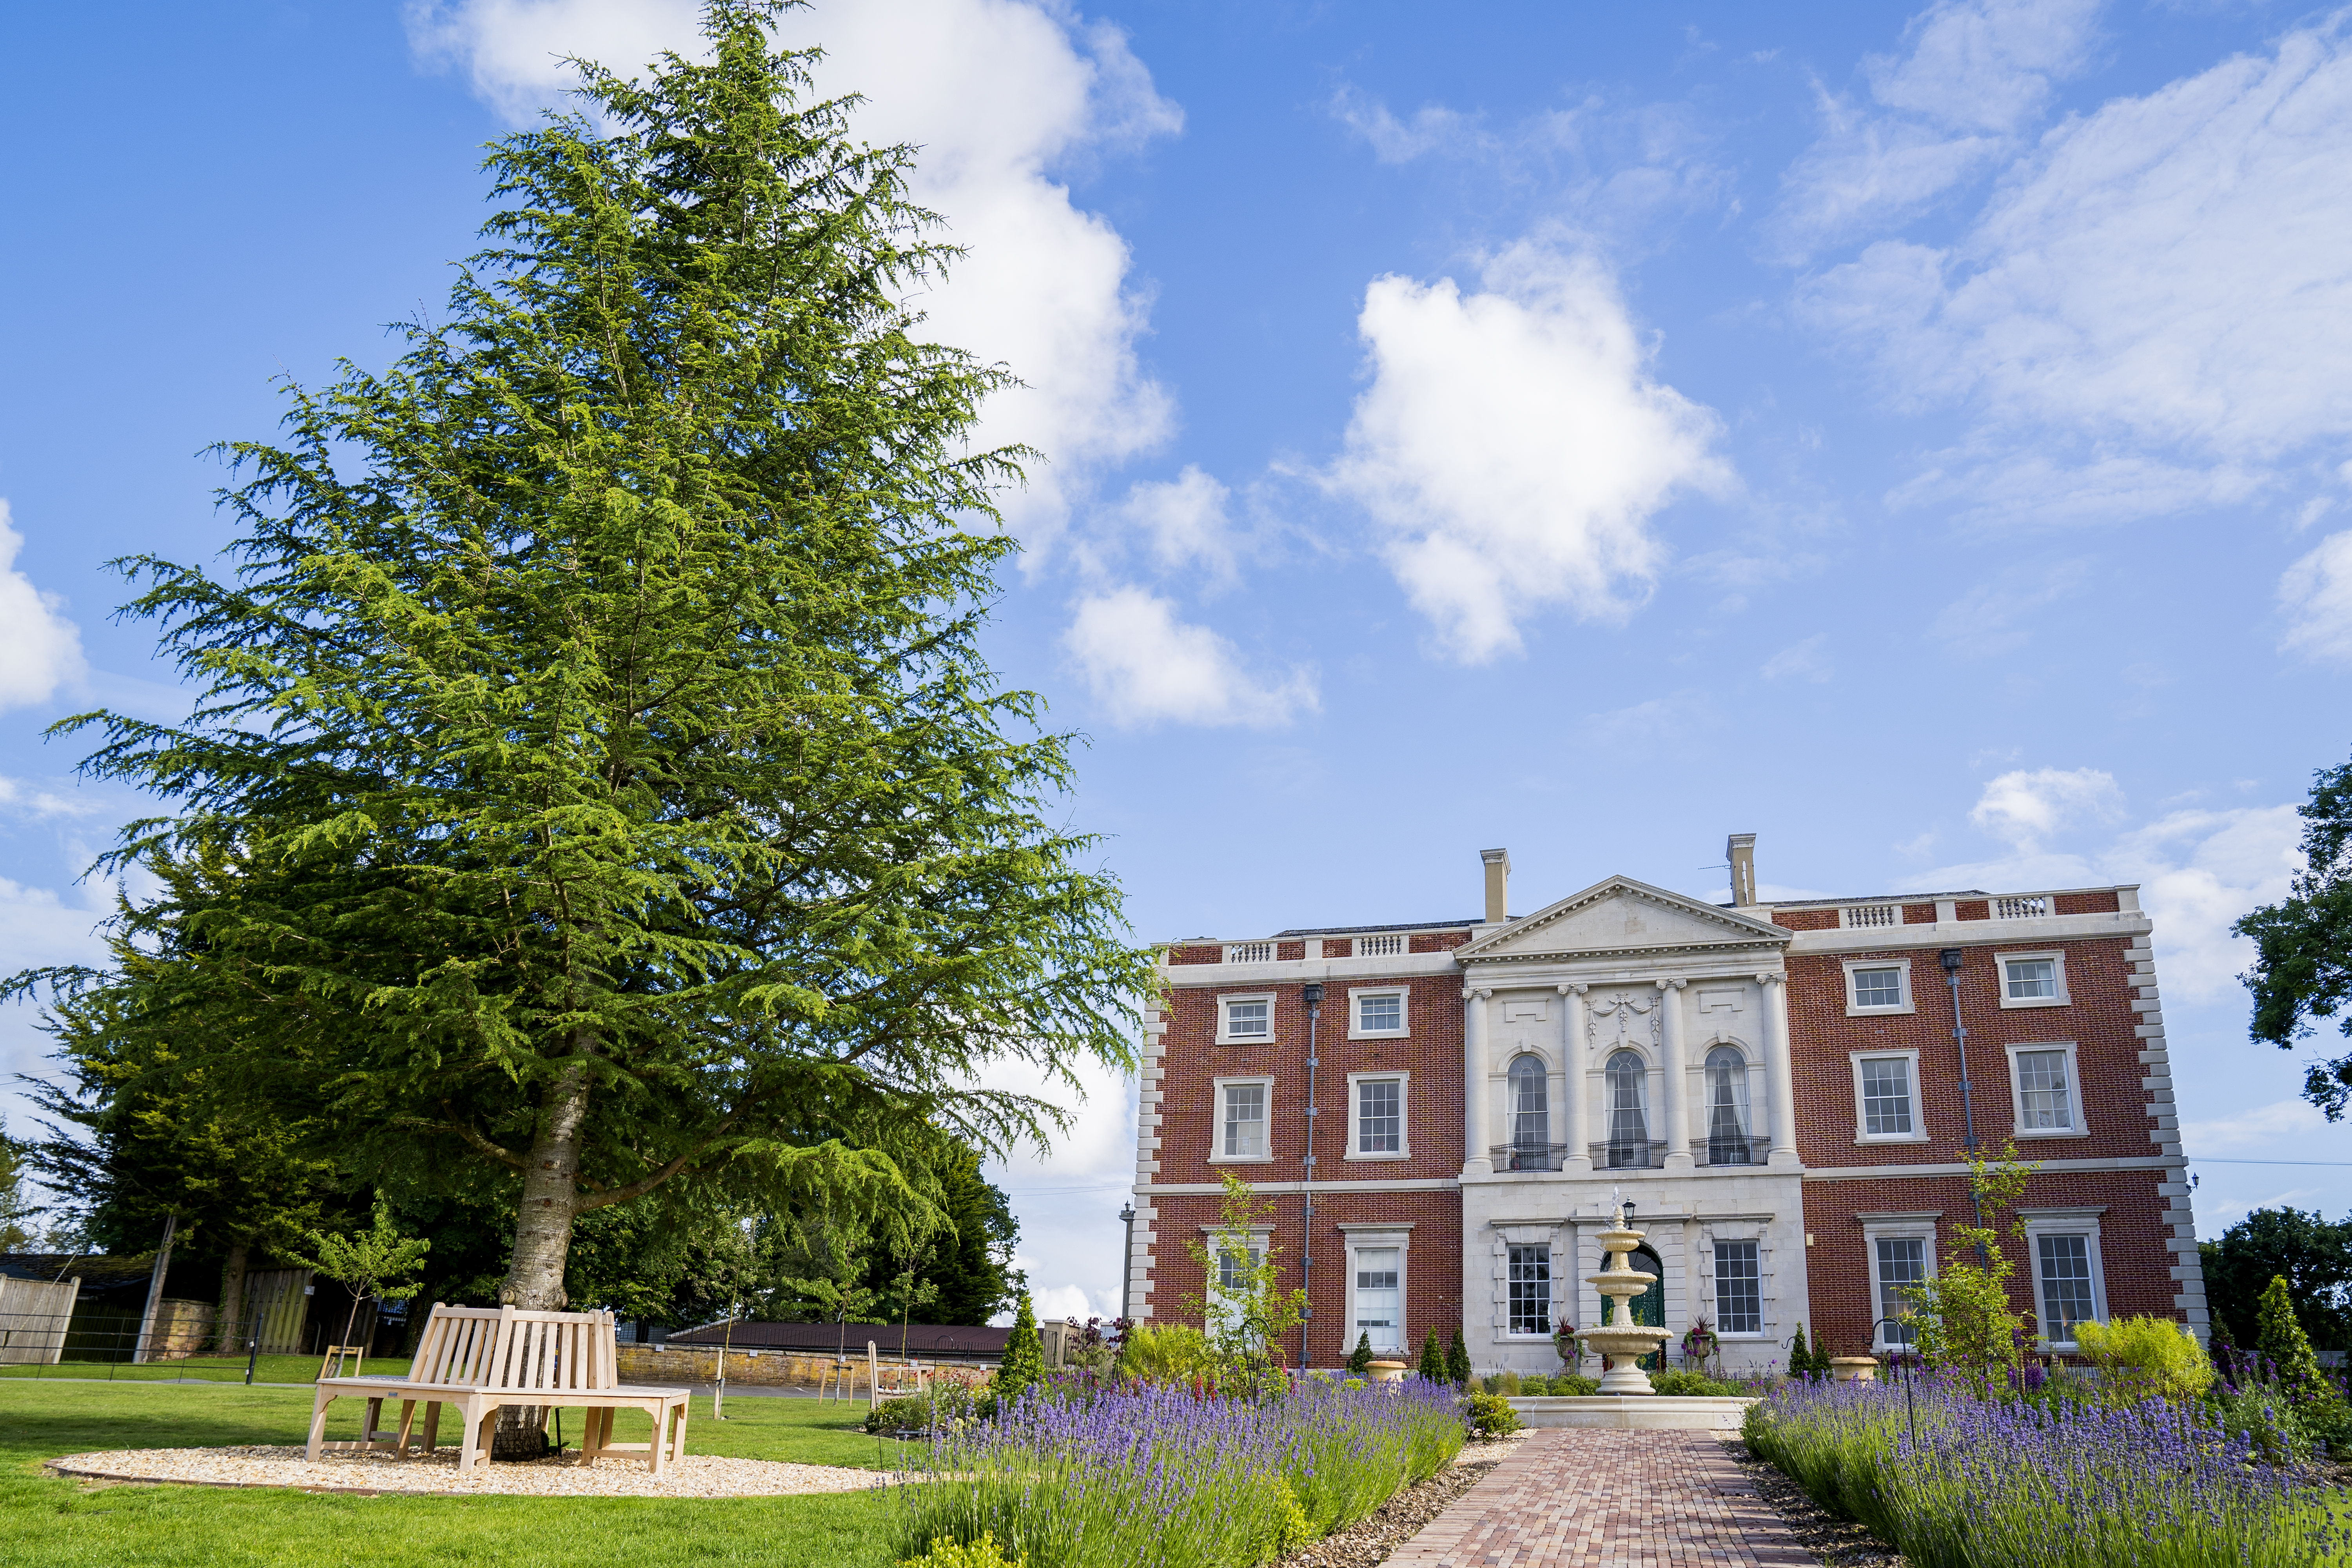 A grand 18th century manor house situated behind a garden with a fountain